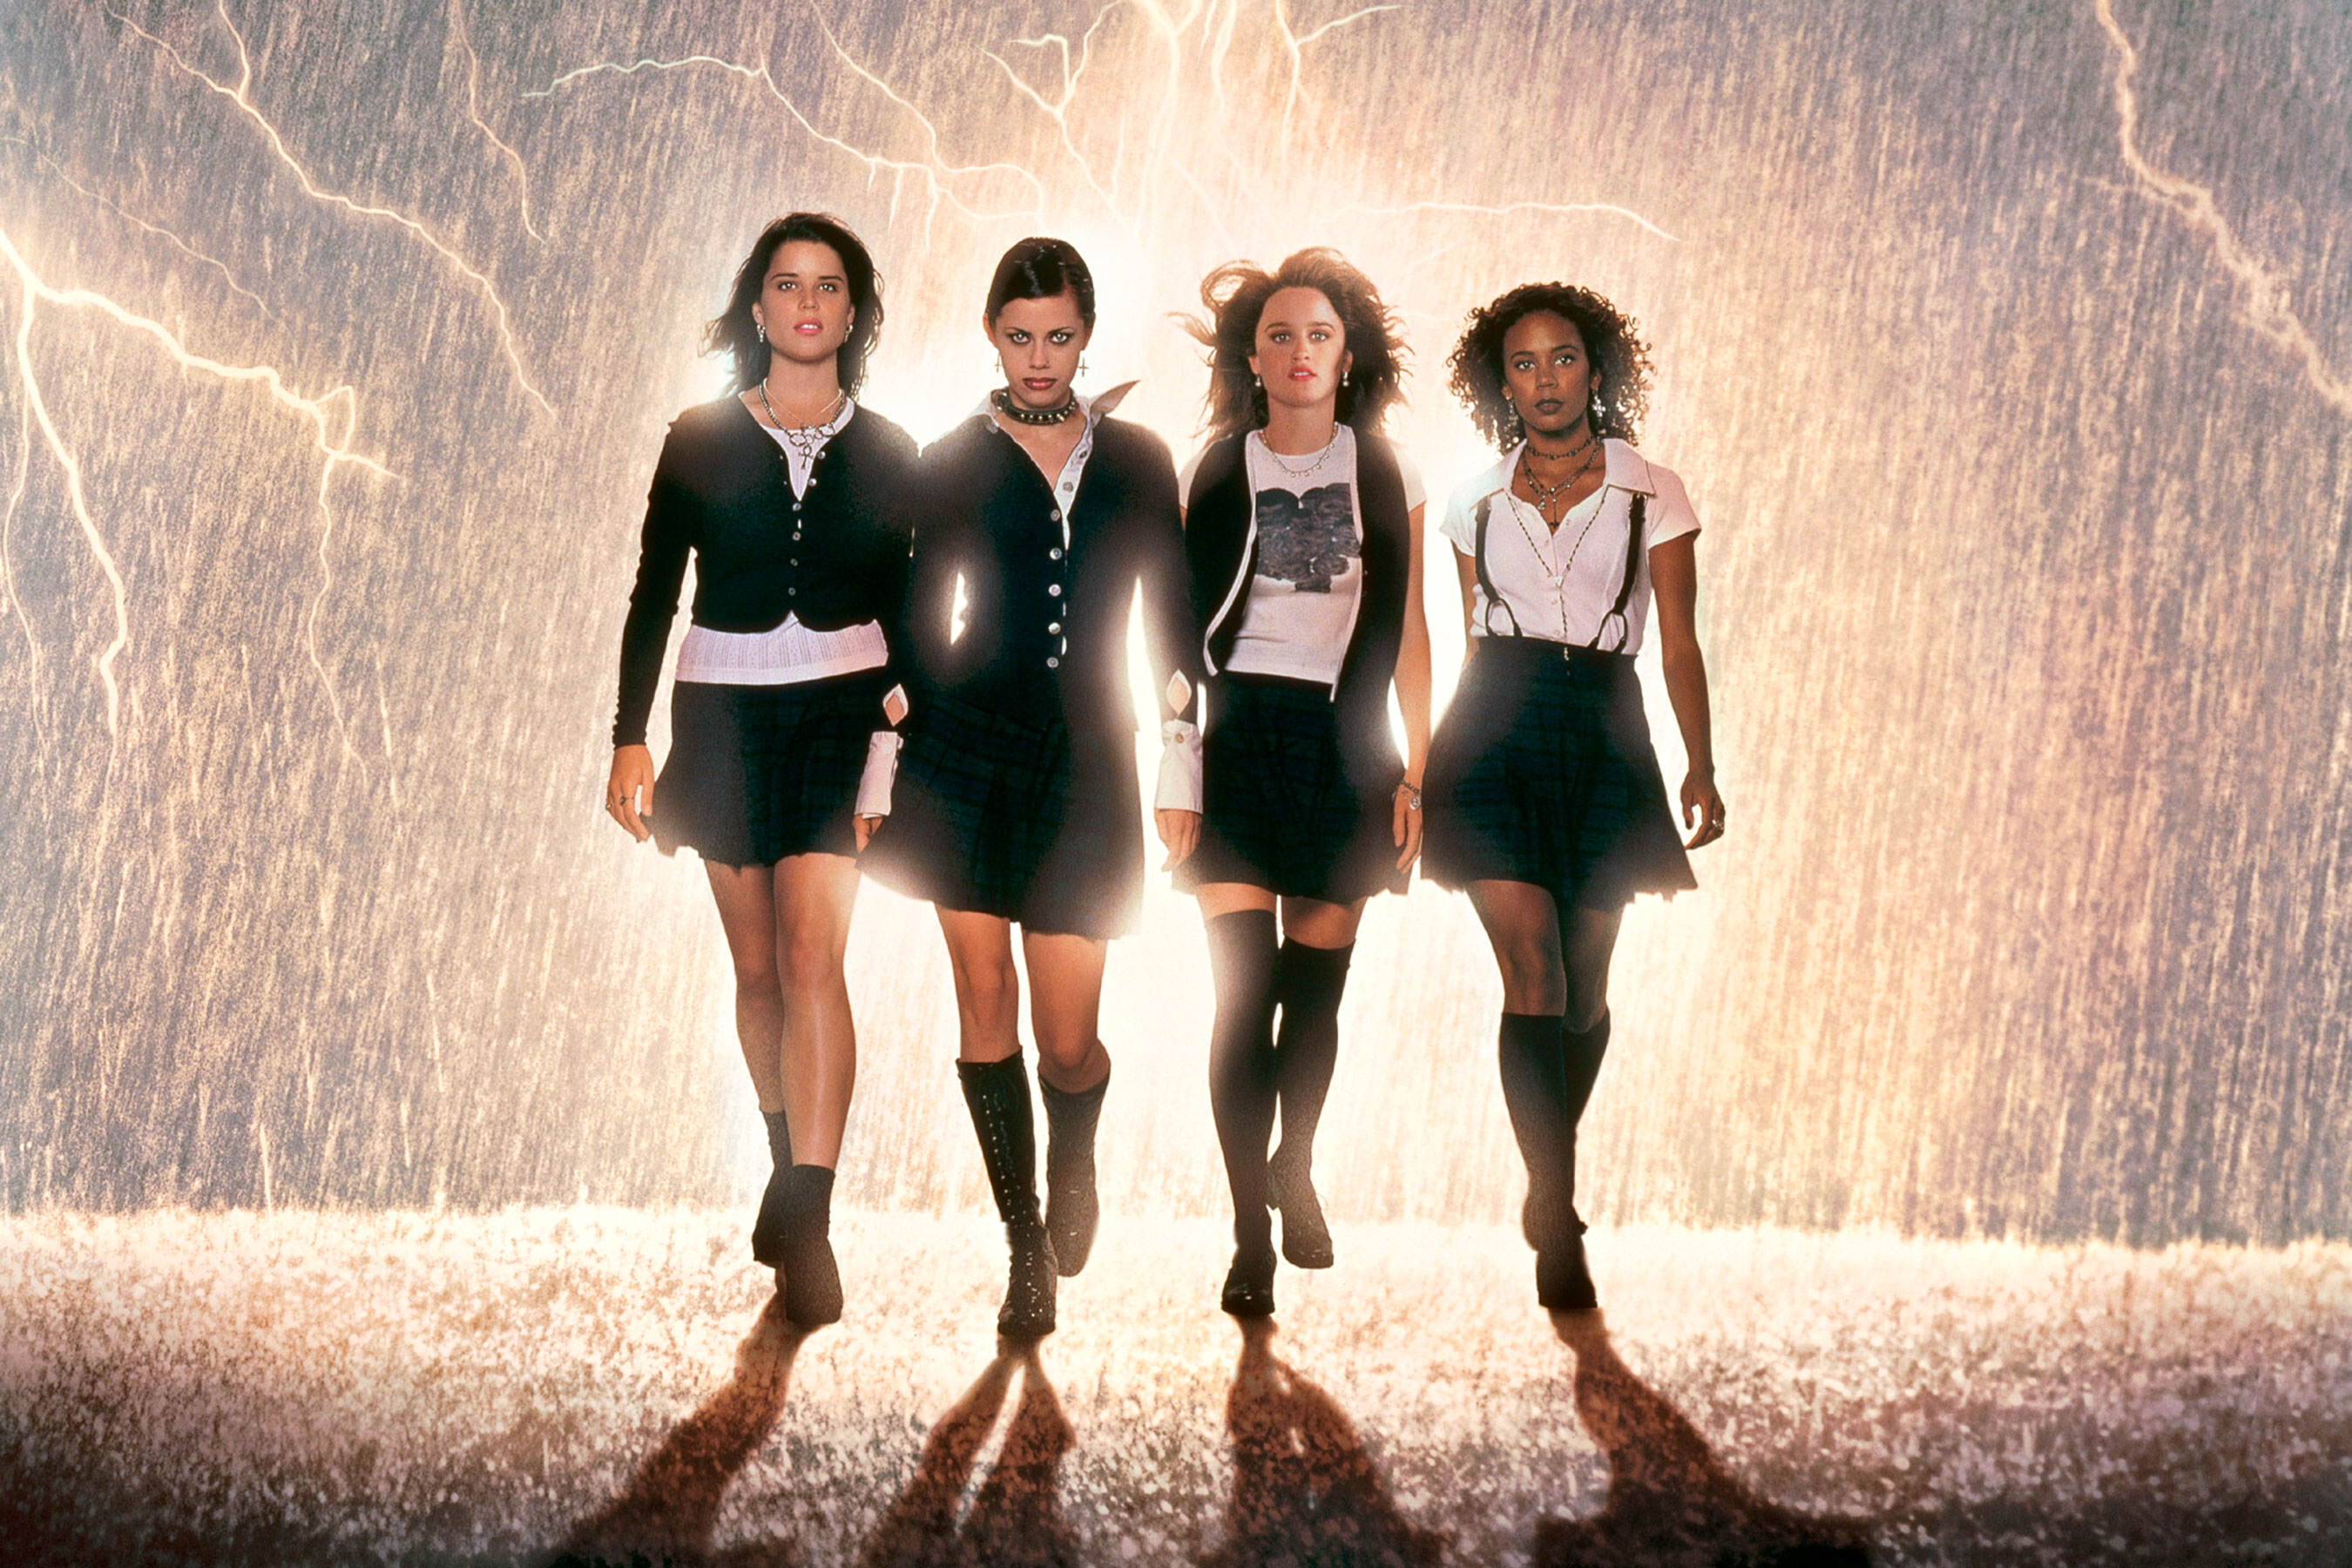 The Craft reboot: Confirms four leads- Spaeny, Gideon Adlon (Blockers), Lovie Simone (Greenleaf), and Zoey Luna (Pose)